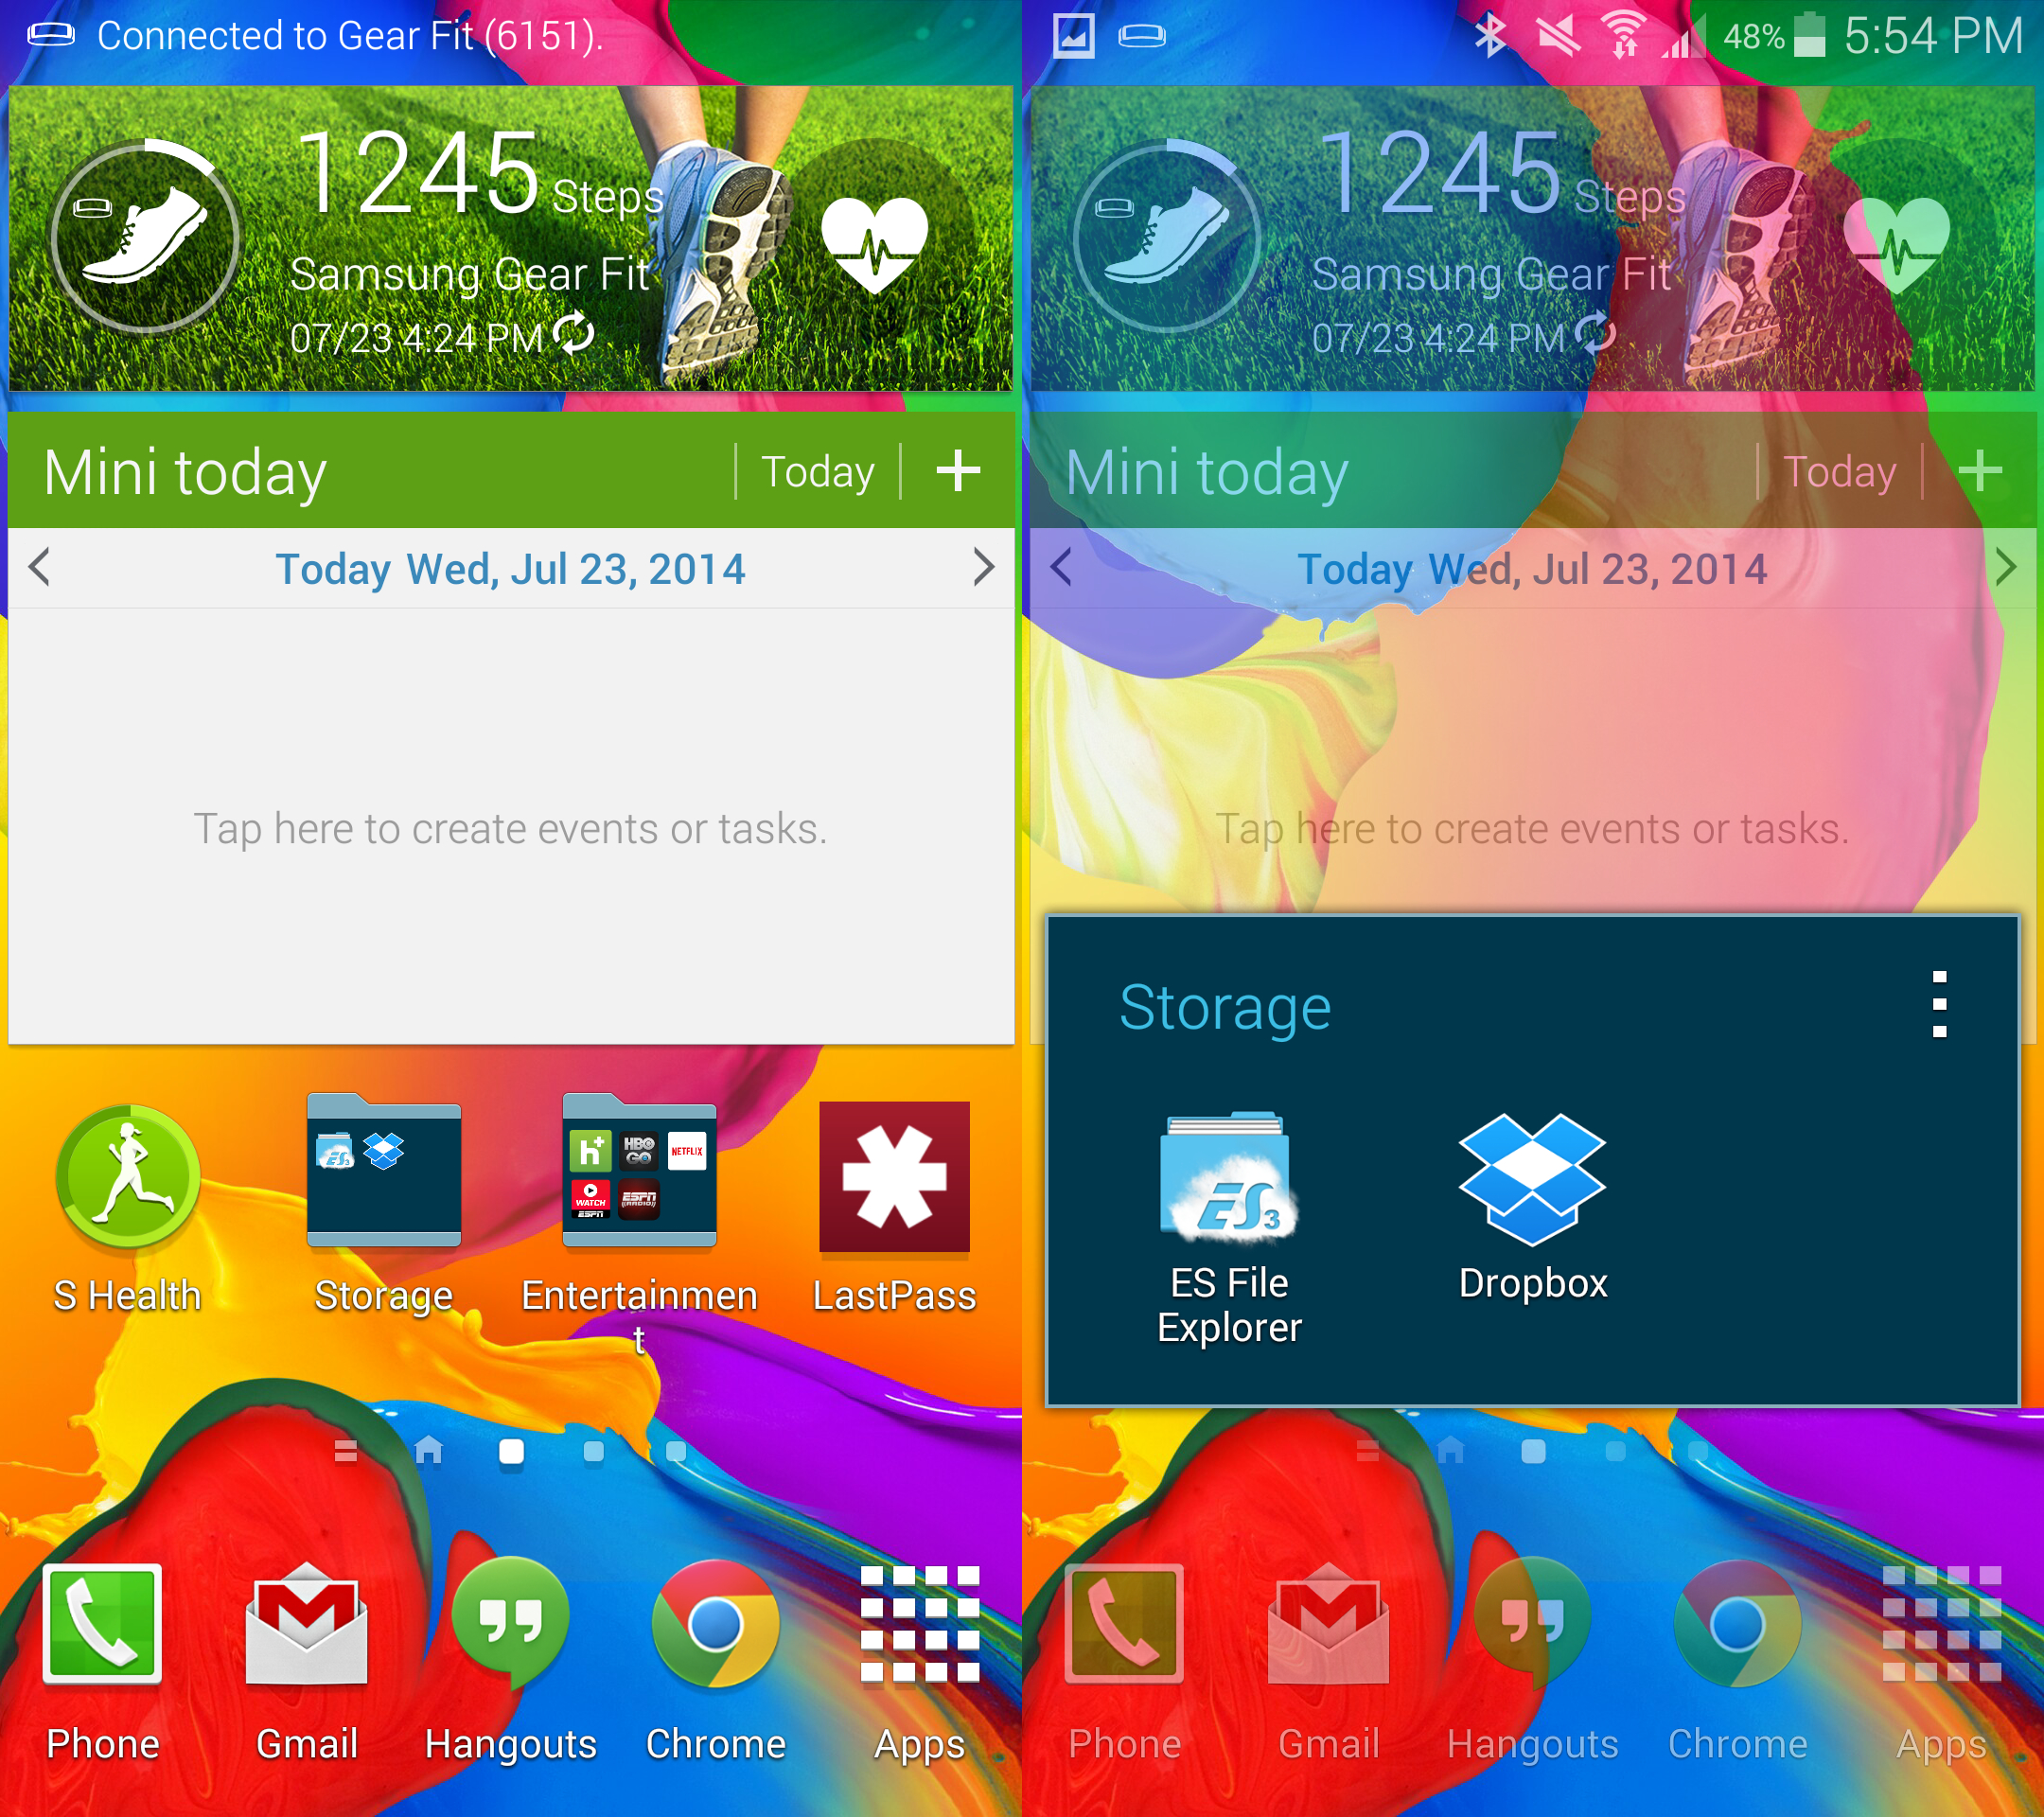 how to delete photos from dropbox on galaxy s5